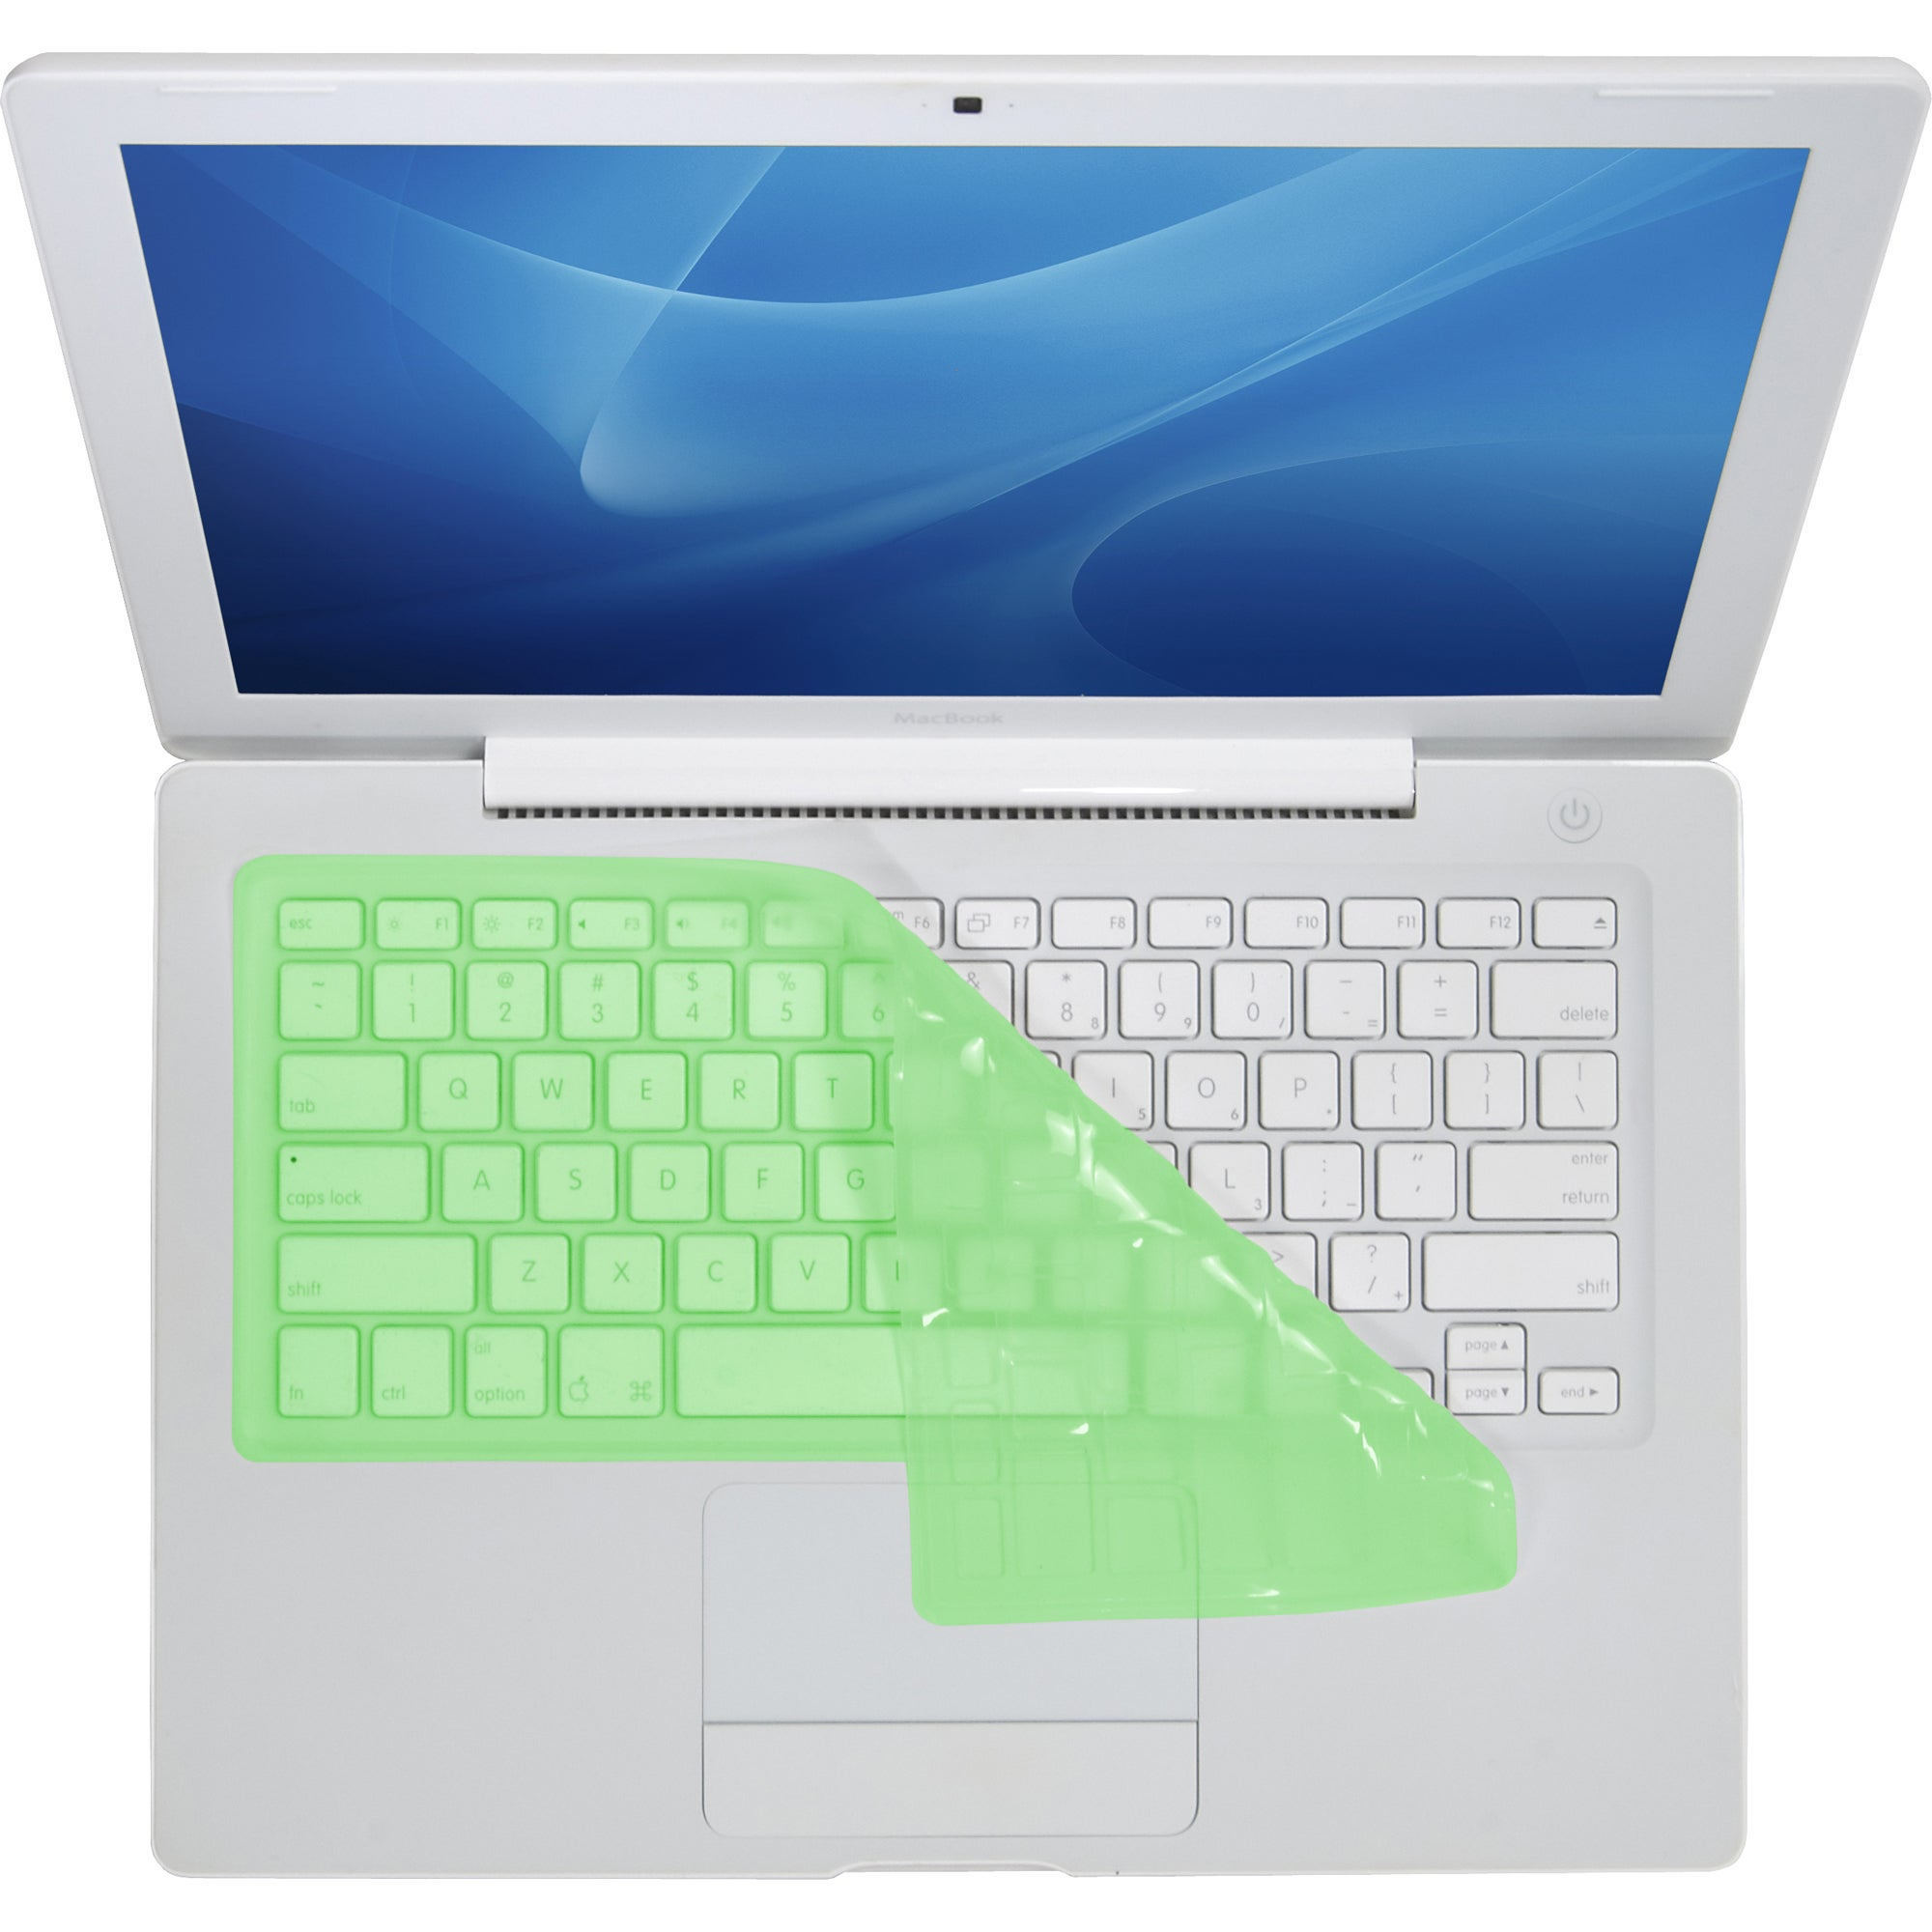 KB Covers Green Keyboard Cover for MacBook/Air 13/Pro (2008+)/Retina